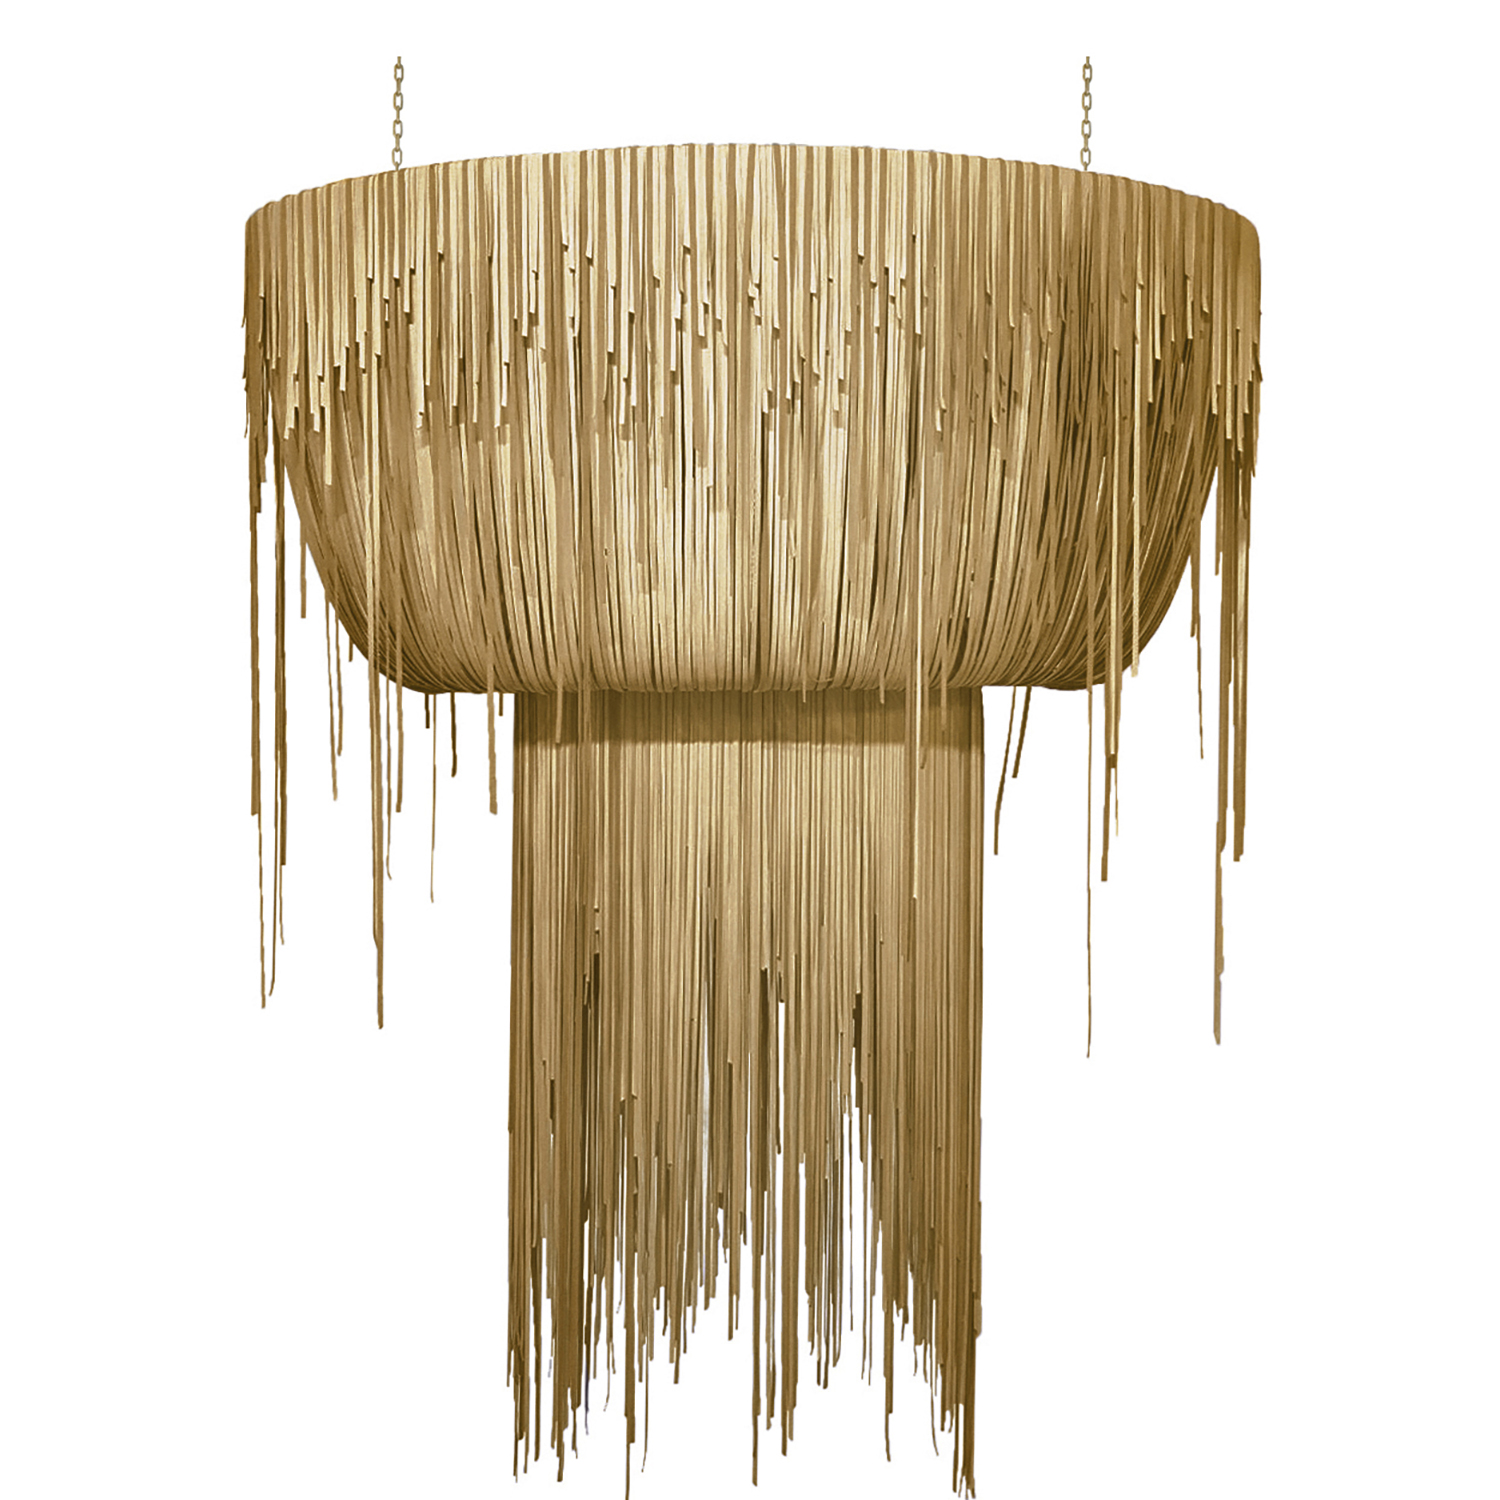 Urchin Chandelier - Oval - Large - Metallic Leather (Made to Order)